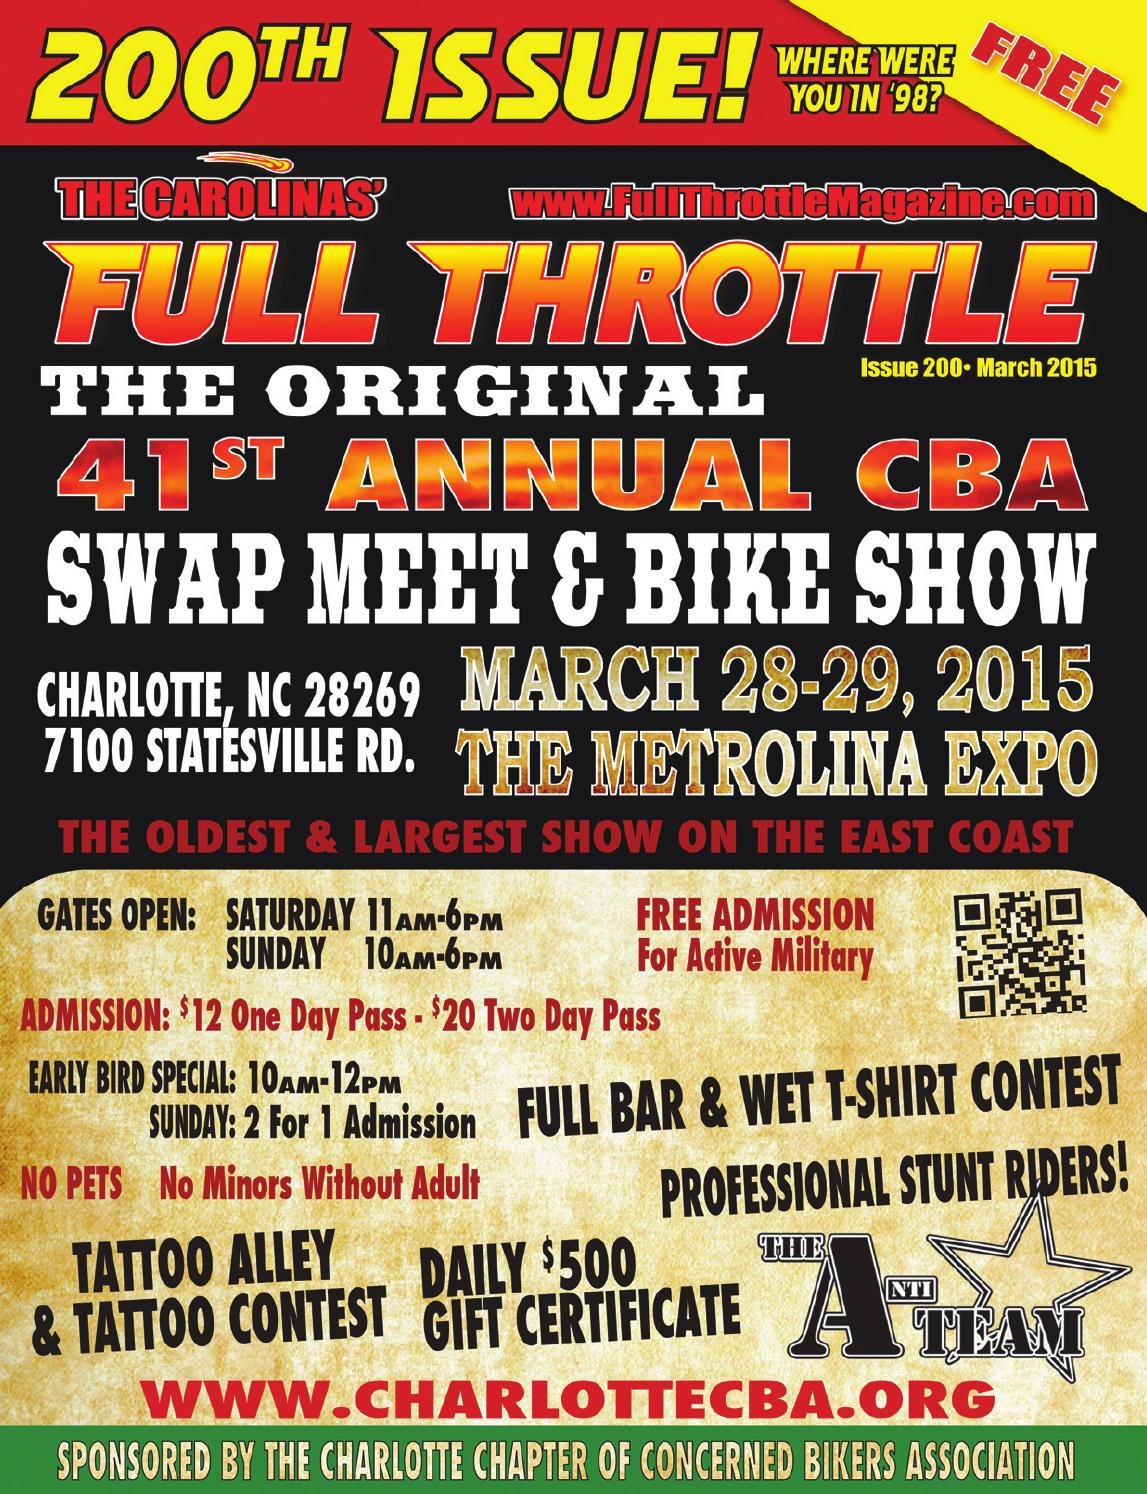 March 2015 issue 200 by the carolinas 39 full throttle - Cruisin carolina magazine ...